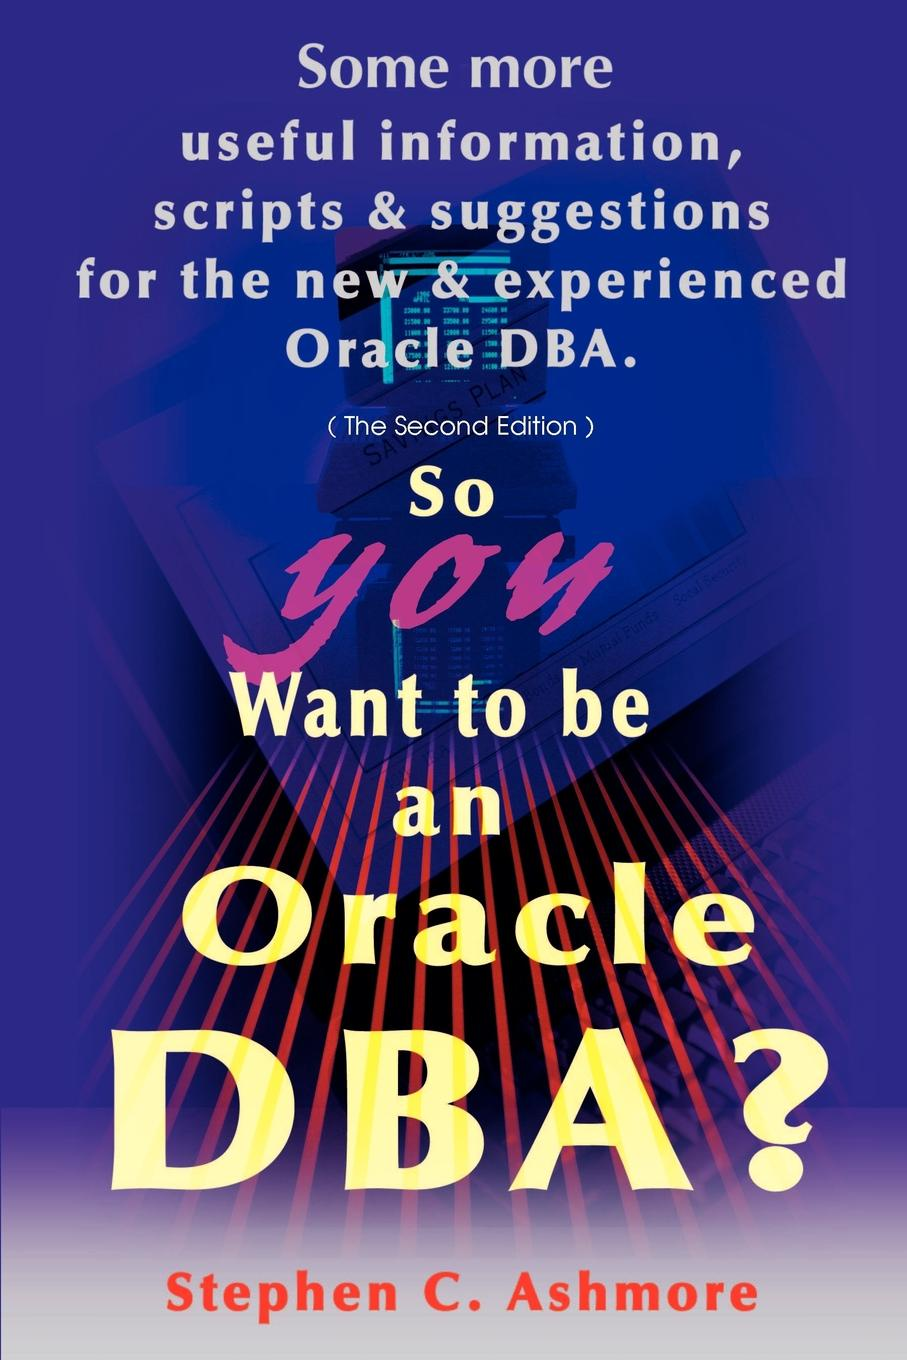 Stephen C. Ashmore So You Want to Be an Oracle DBA?. Some More Useful Information, Scripts and Suggestions for the New and Experienced Oracle DBA tim hines the oracle